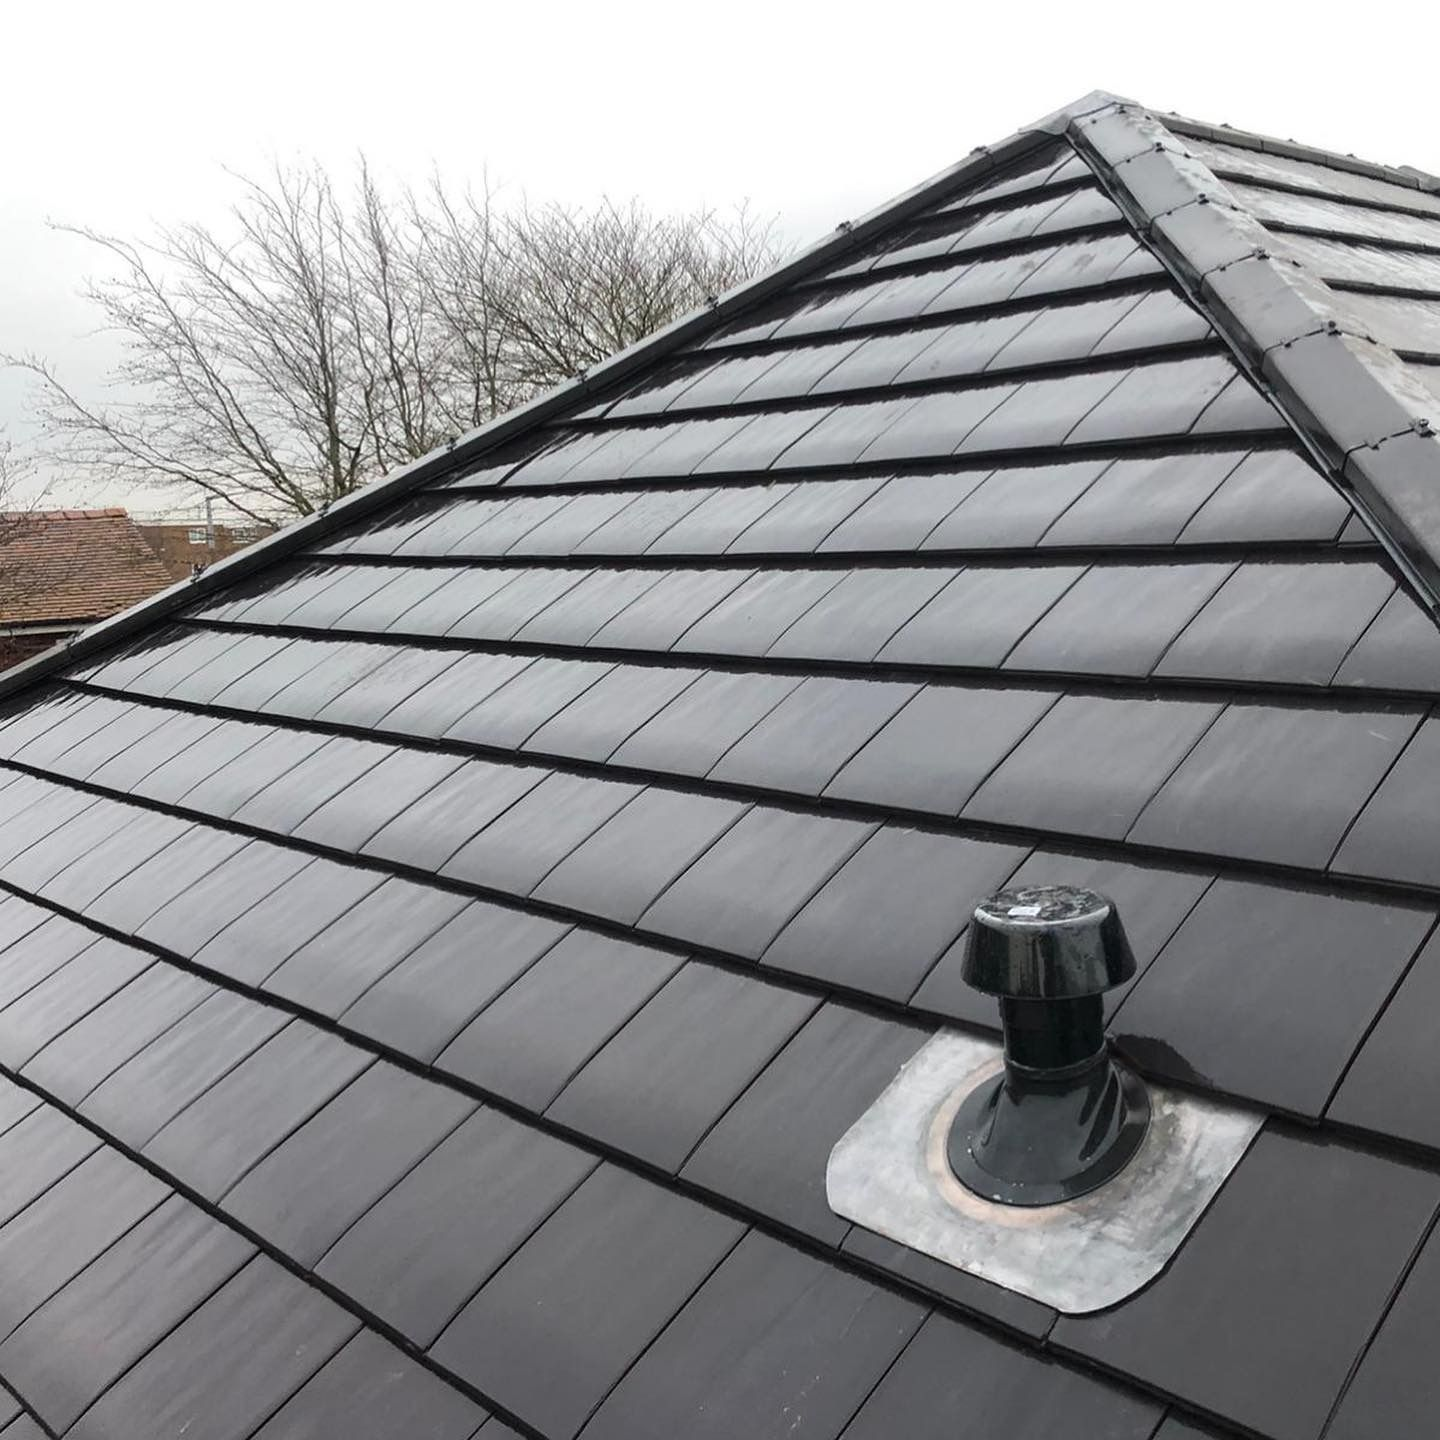 Clay Tile Re Roof In 2020 Flat Roof Tiles Roofing Roofer